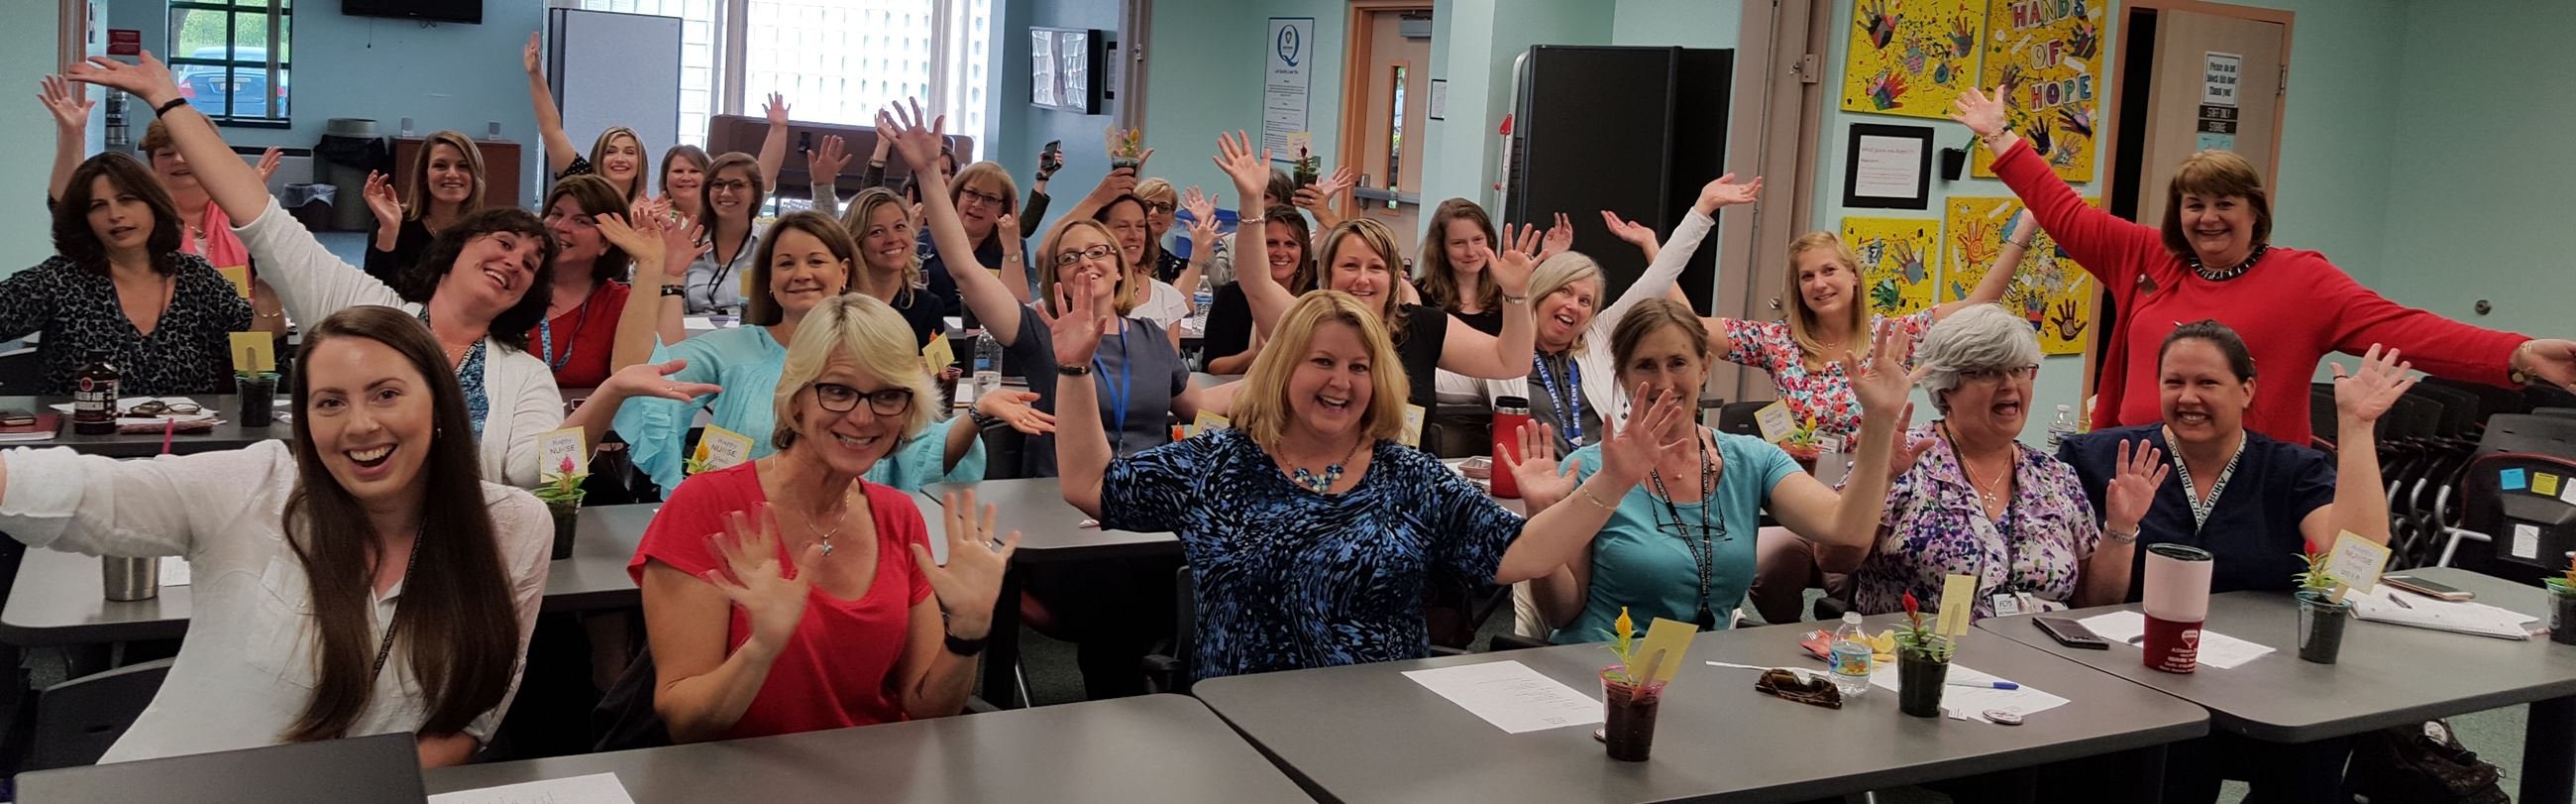 group of school nurses smiling with hands in the air